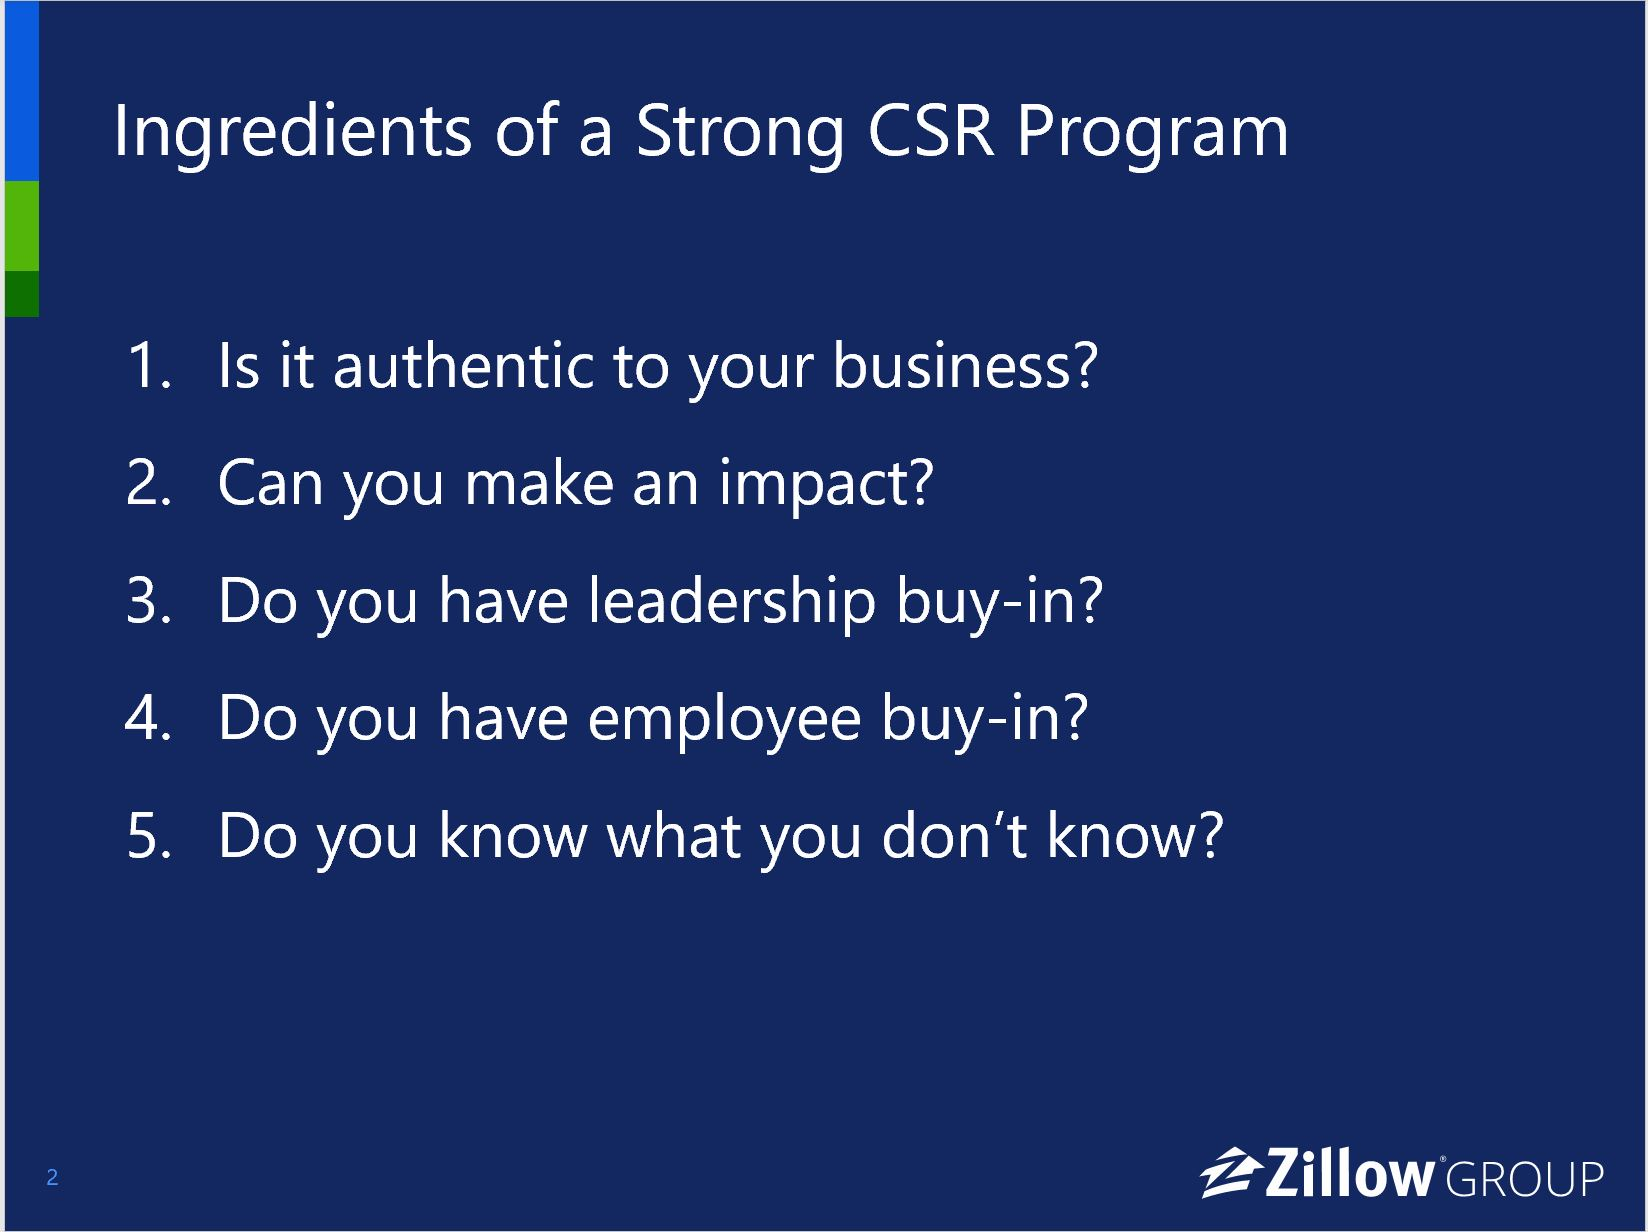 ingredients of a strong csr program zillow group